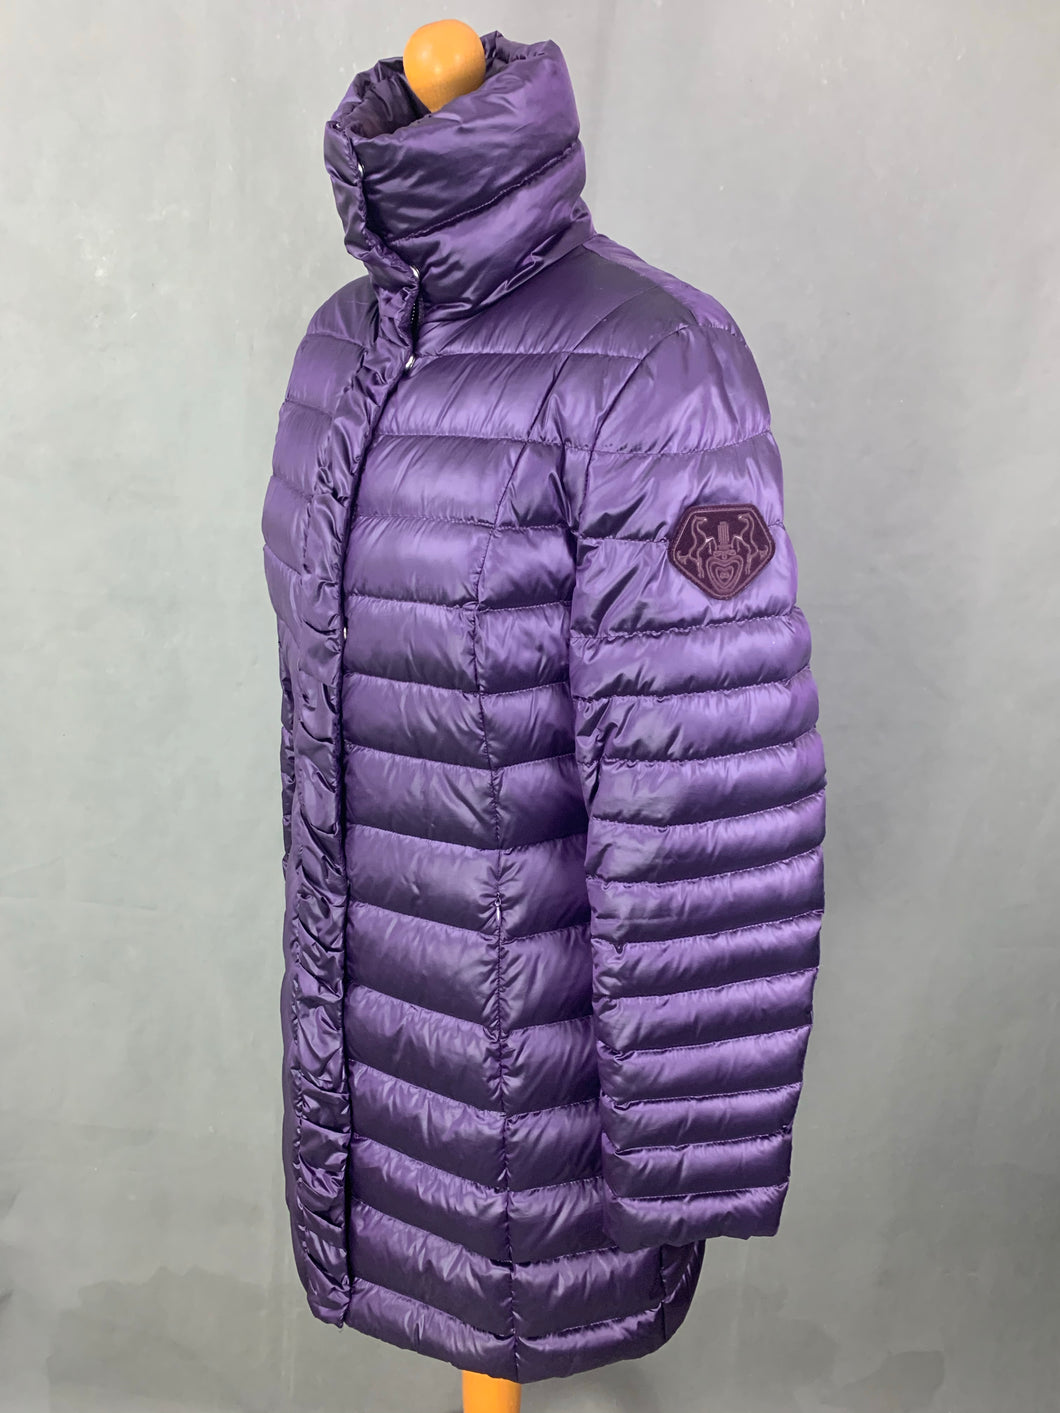 ESCADA Ladies DOWN FILLED Purple QUILTED COAT Size 40 - Medium M - UK 12